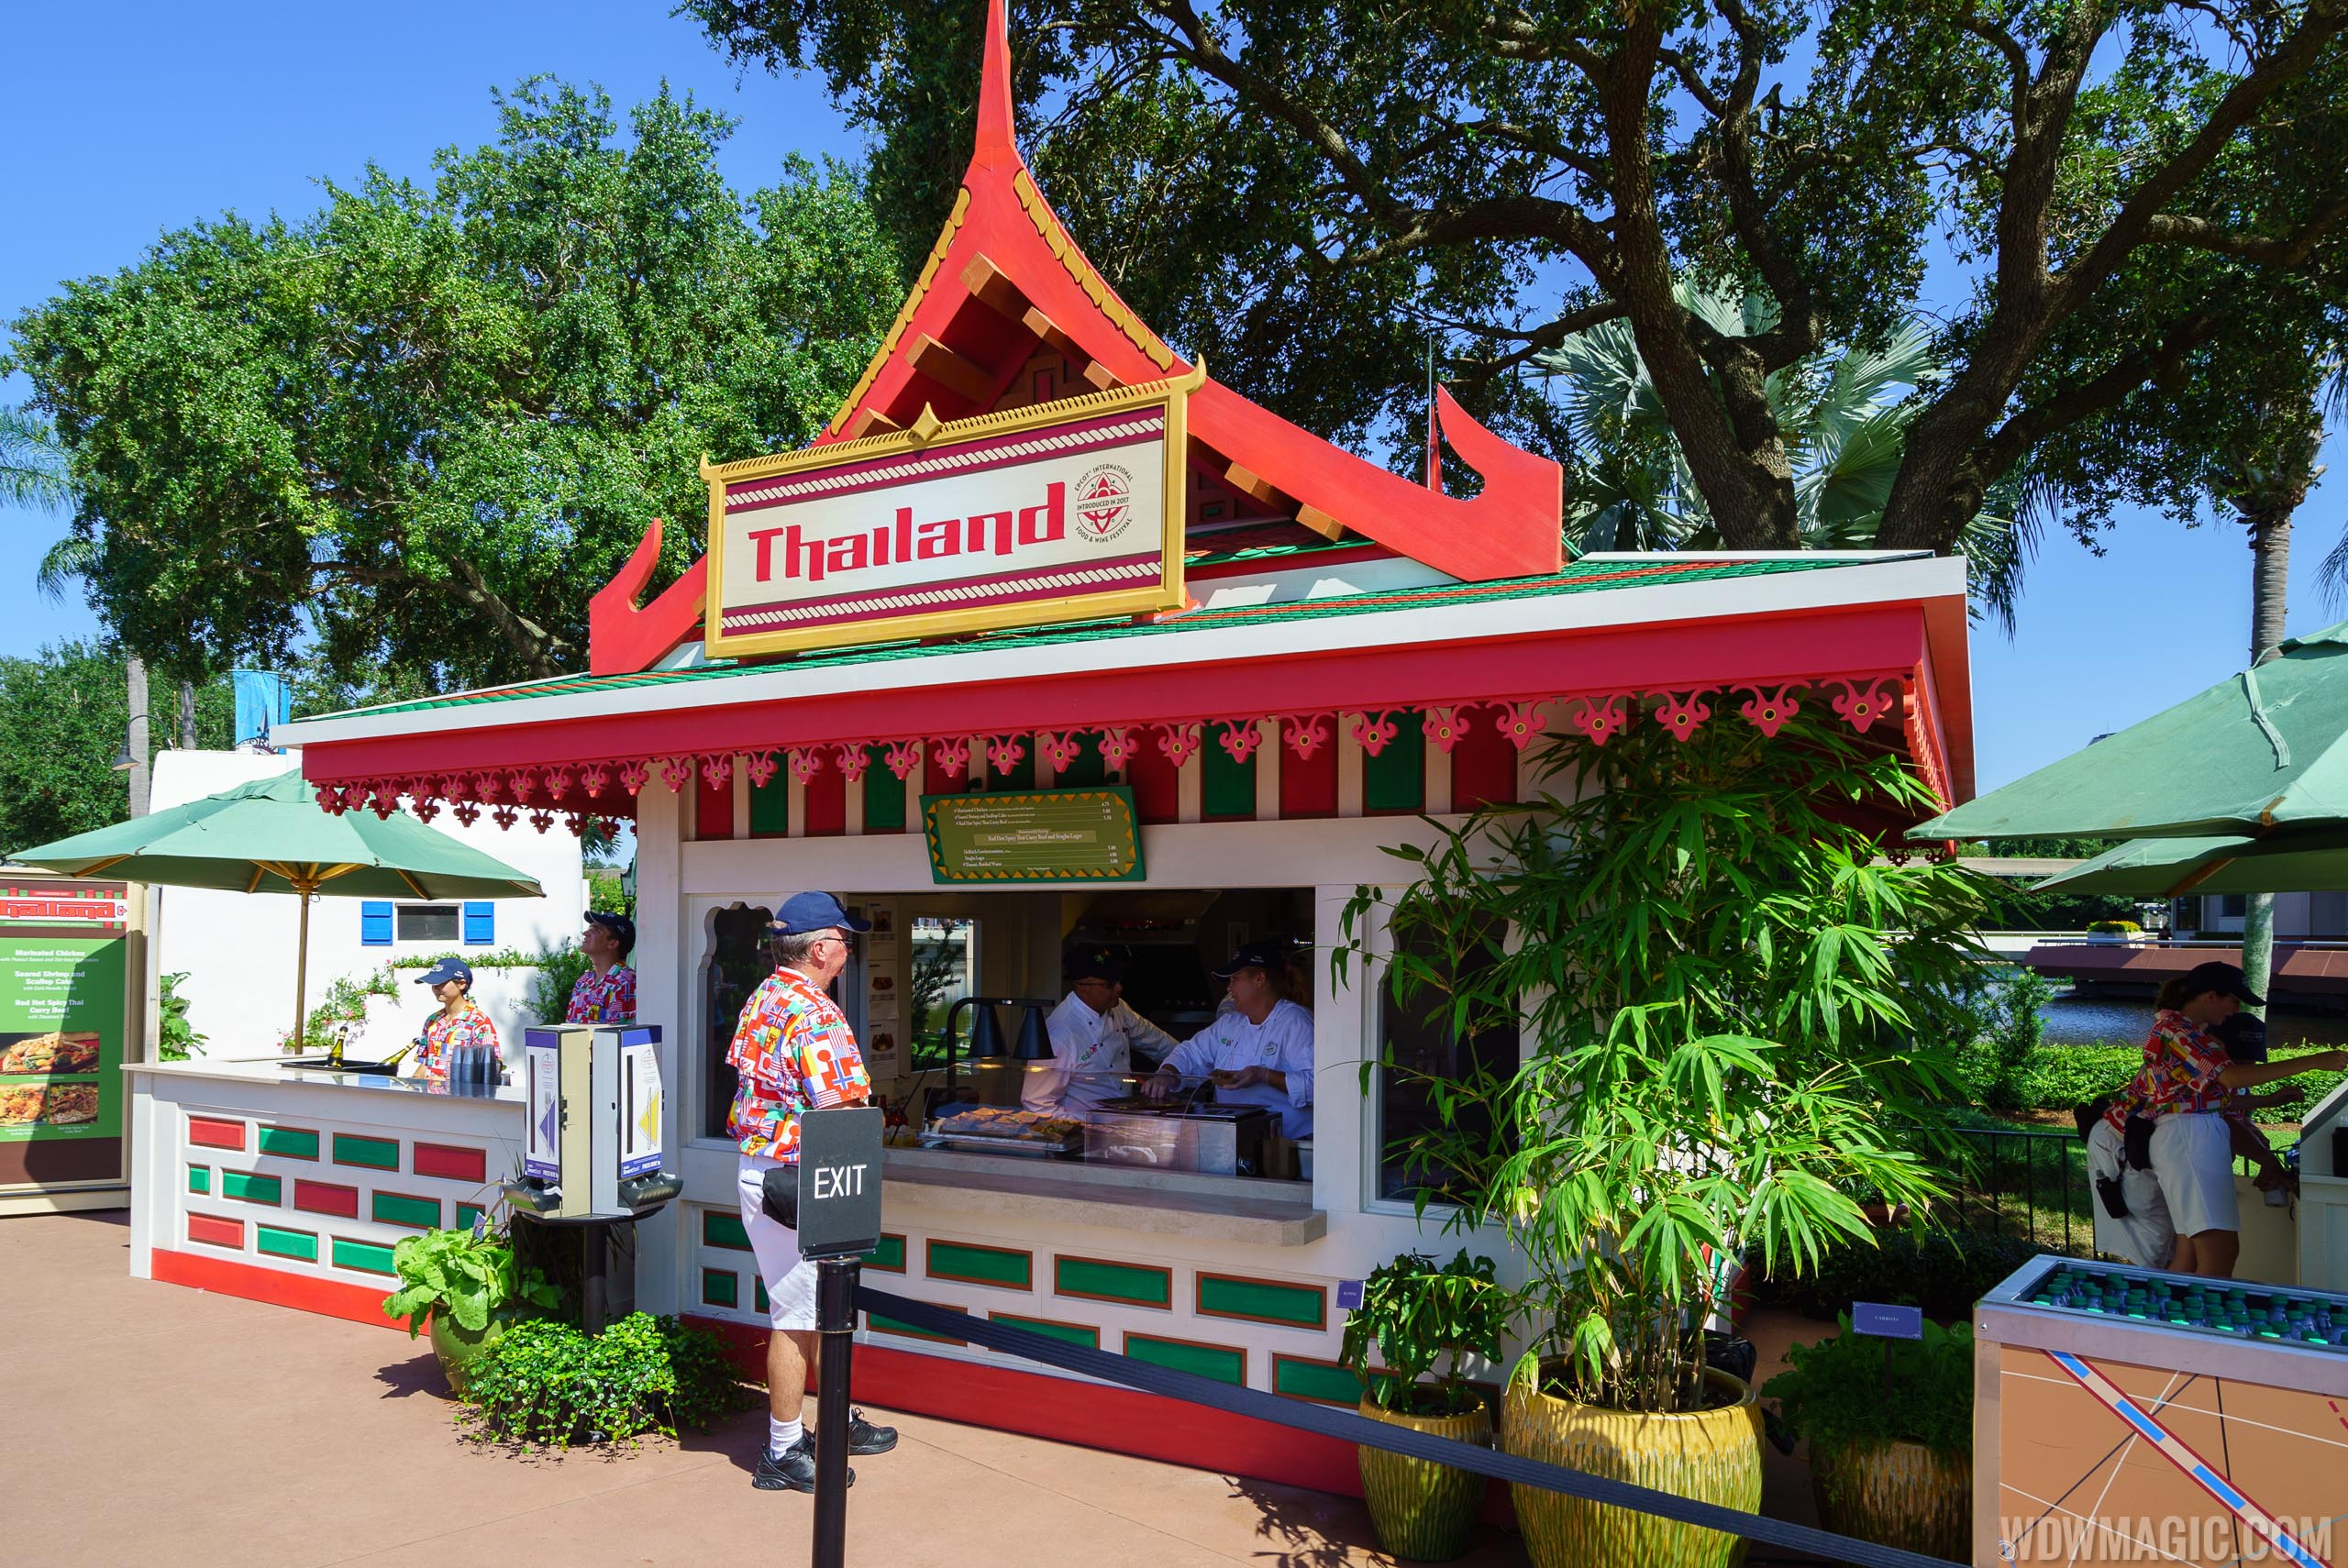 2017 Epcot Food and Wine Festival Marketplace kiosks, menus and pricing